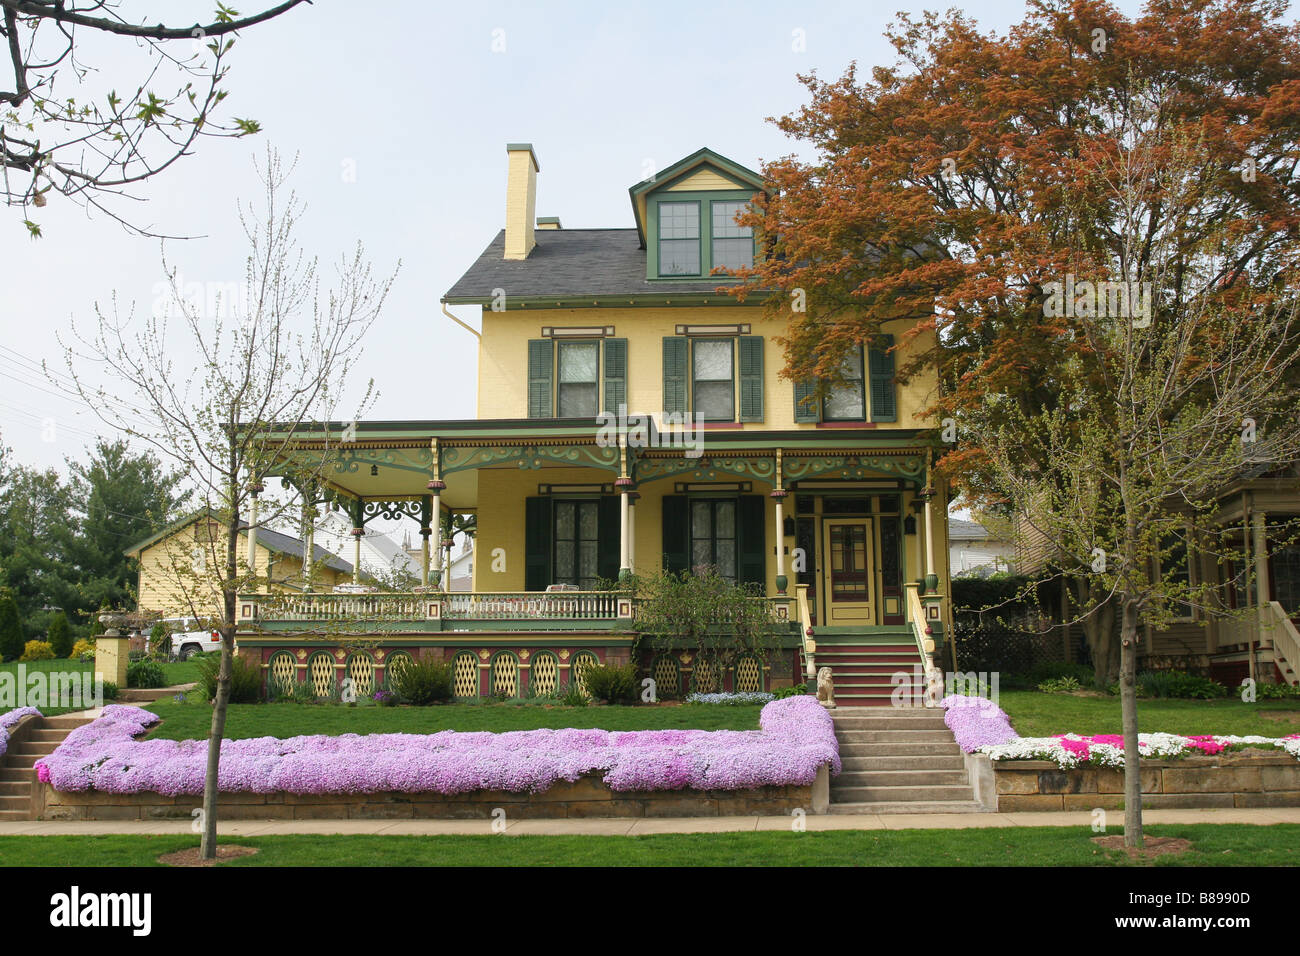 Historic Wolff House 105 East Gambier Street Mount Vernon Ohio - Stock Image